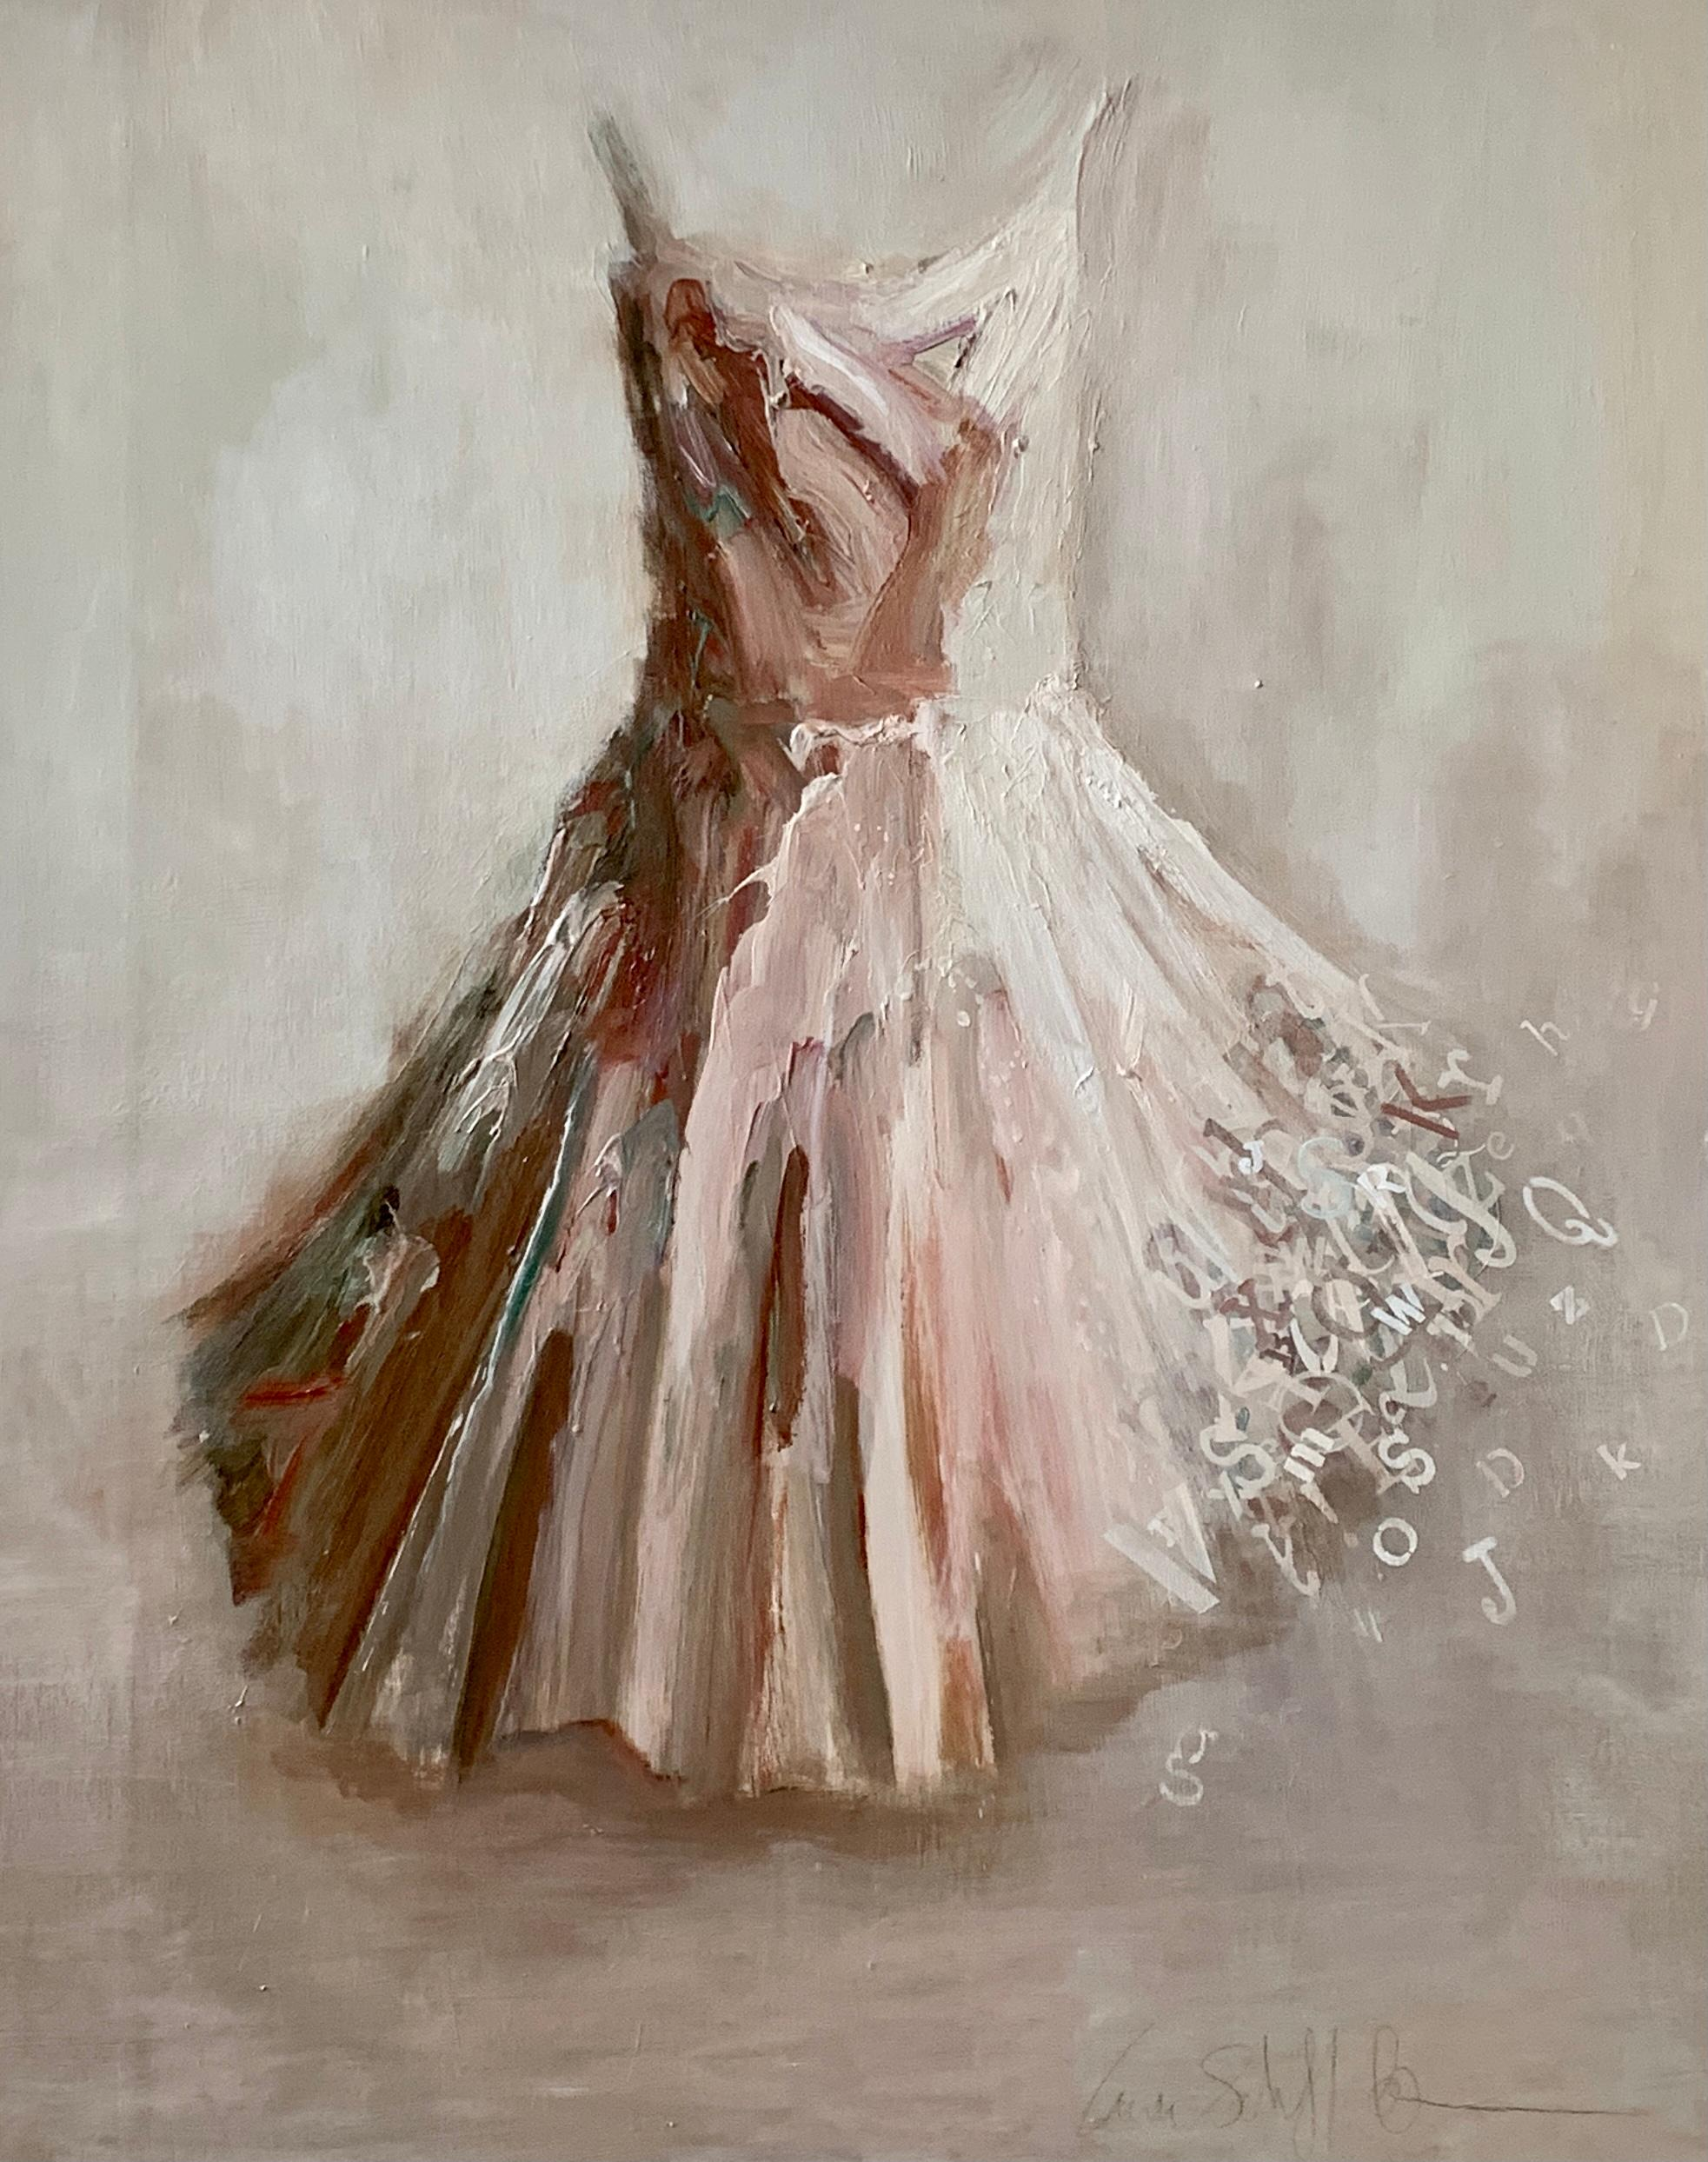 All Things Eventually- Blush toned dress portrait painting by Laura Schiff Bean